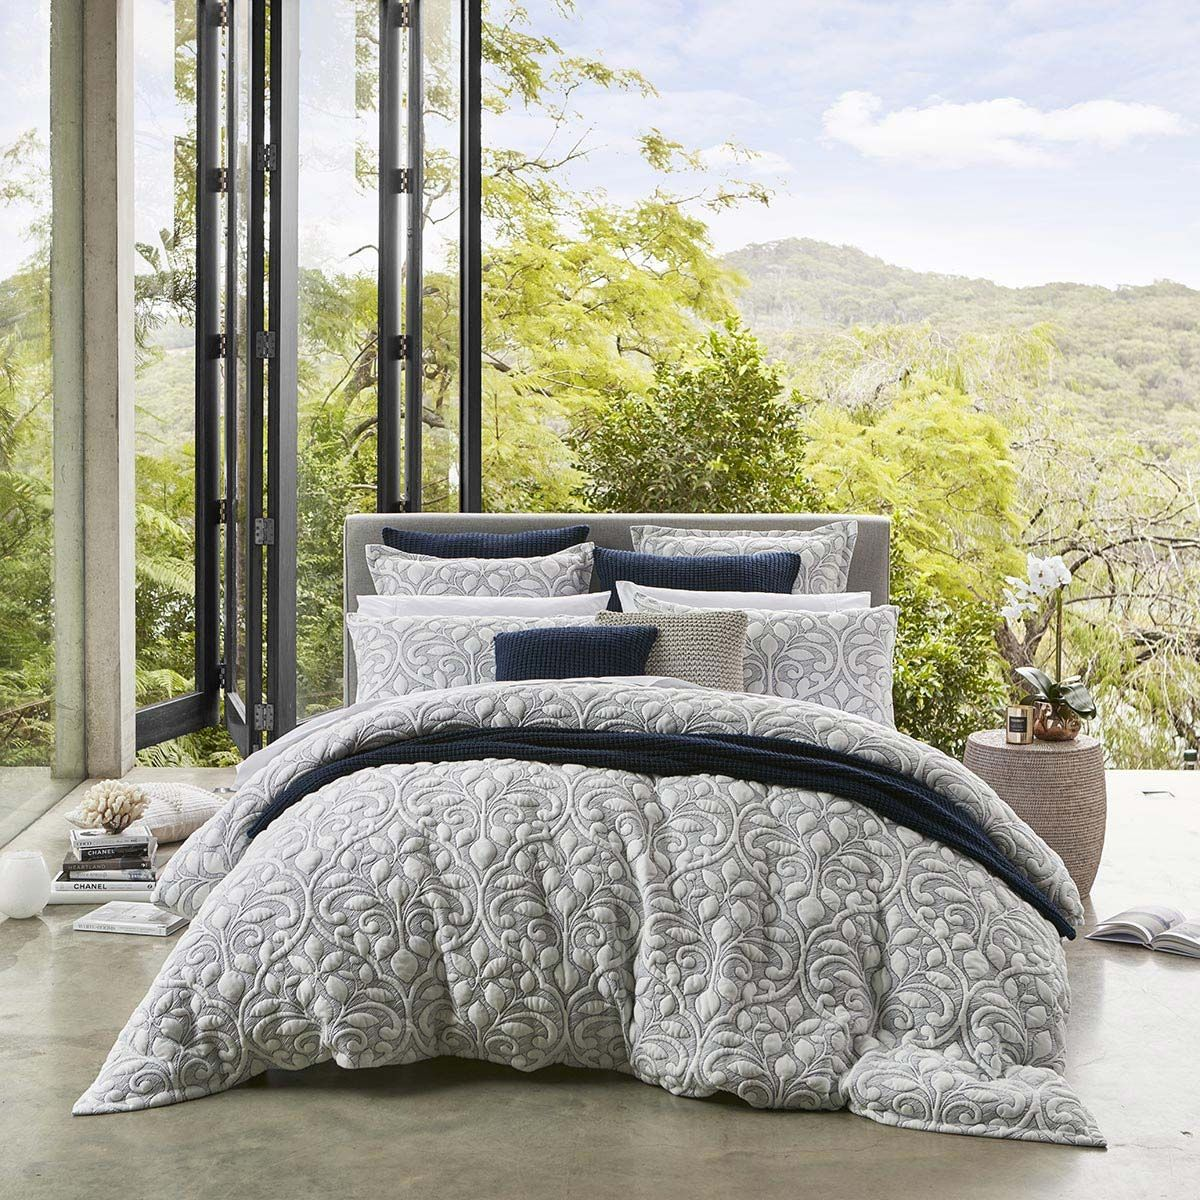 Liana Navy Quilt Cover Set By Logan & Mason makes a stunning ... : super king size quilt covers australia - Adamdwight.com